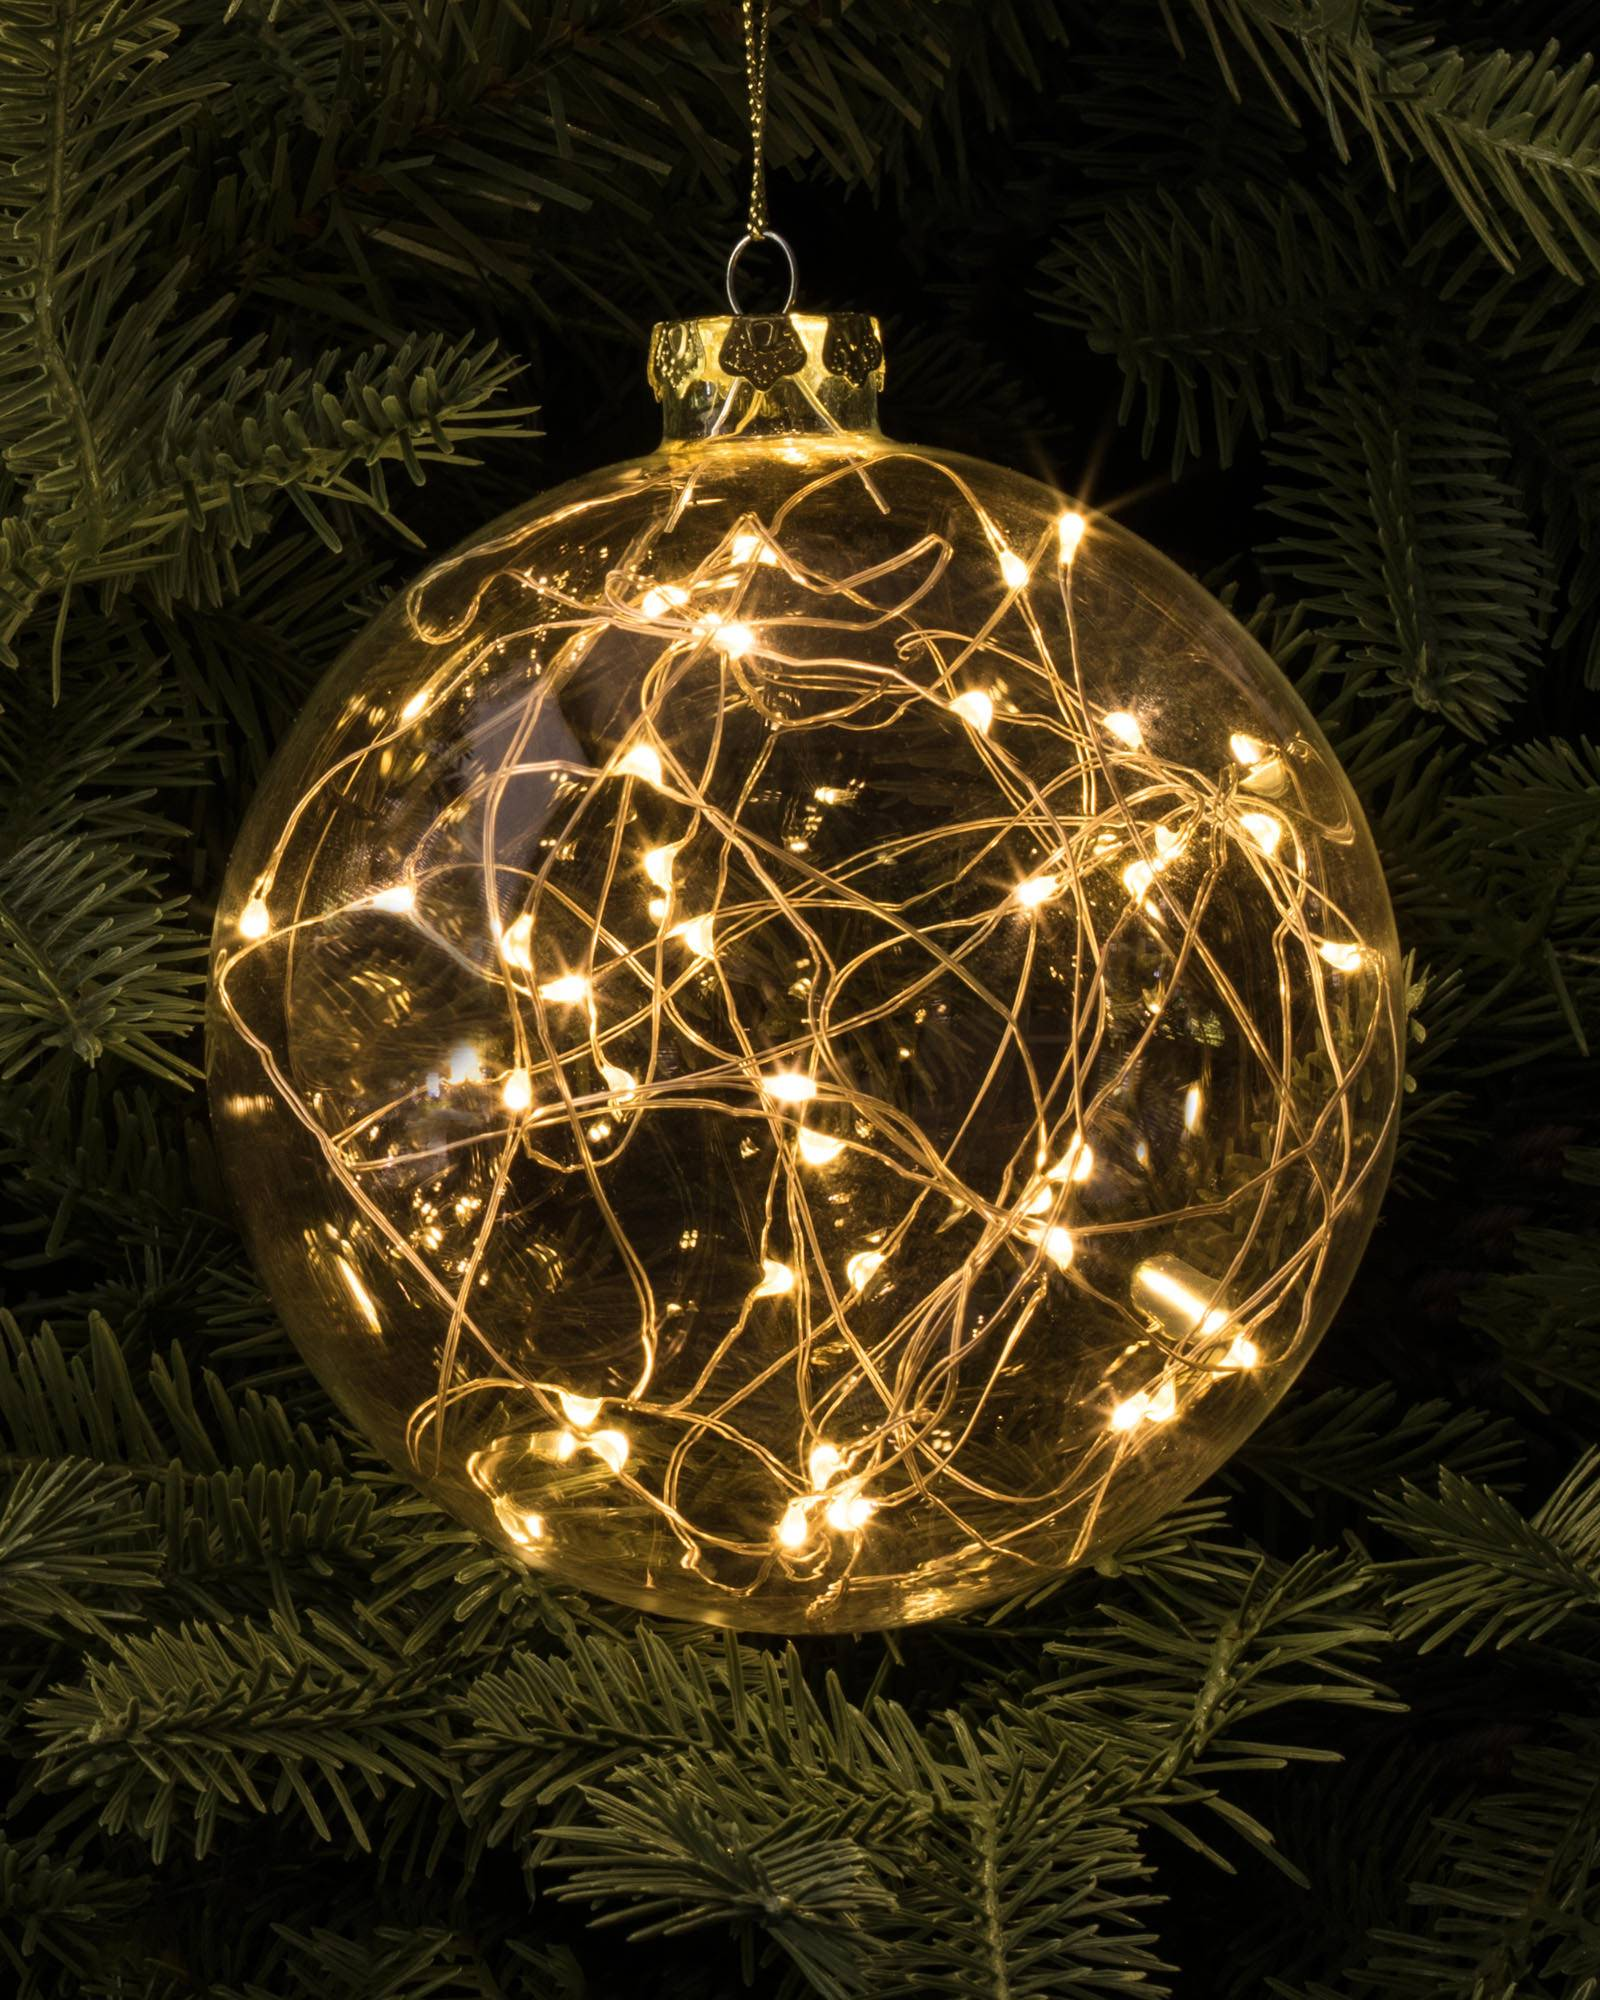 Led Rope Light Tinsel Bauble: LED Fairy Light Bauble, Set Of 3